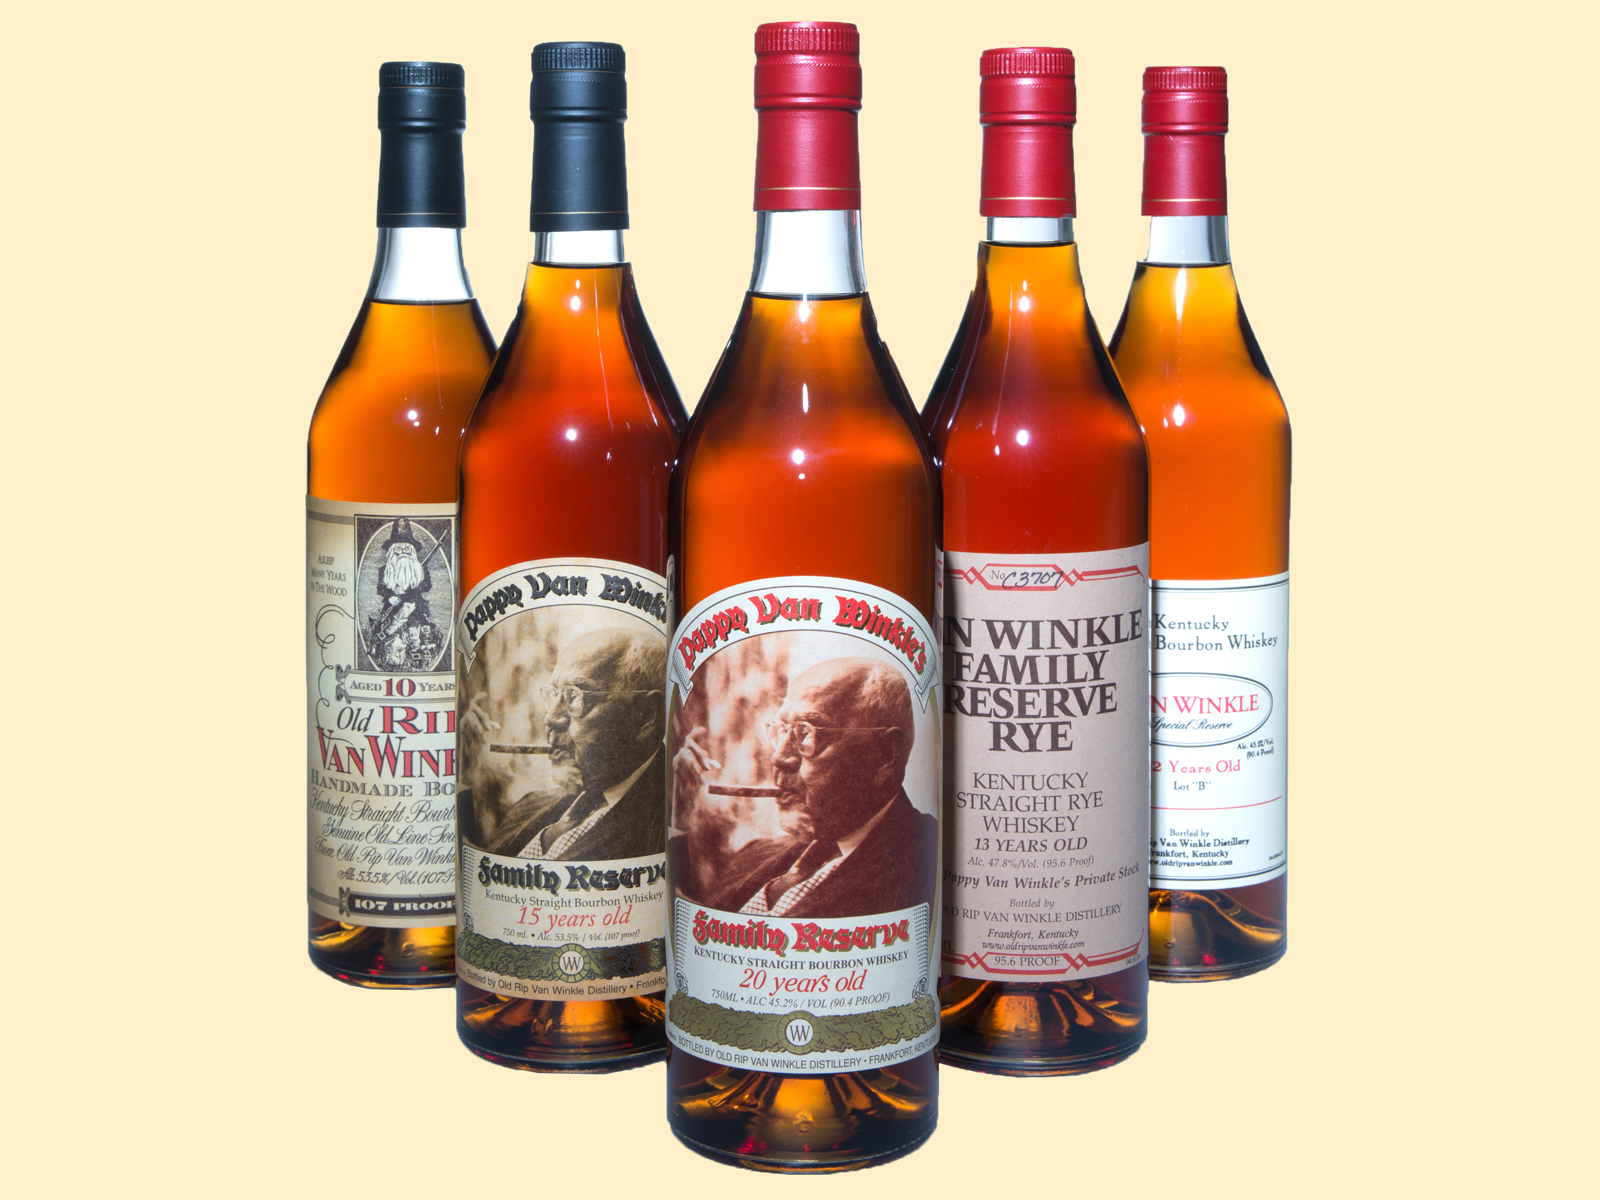 Want a Bottle of Pappy Van Winkle? Here Are This Year's Release Details